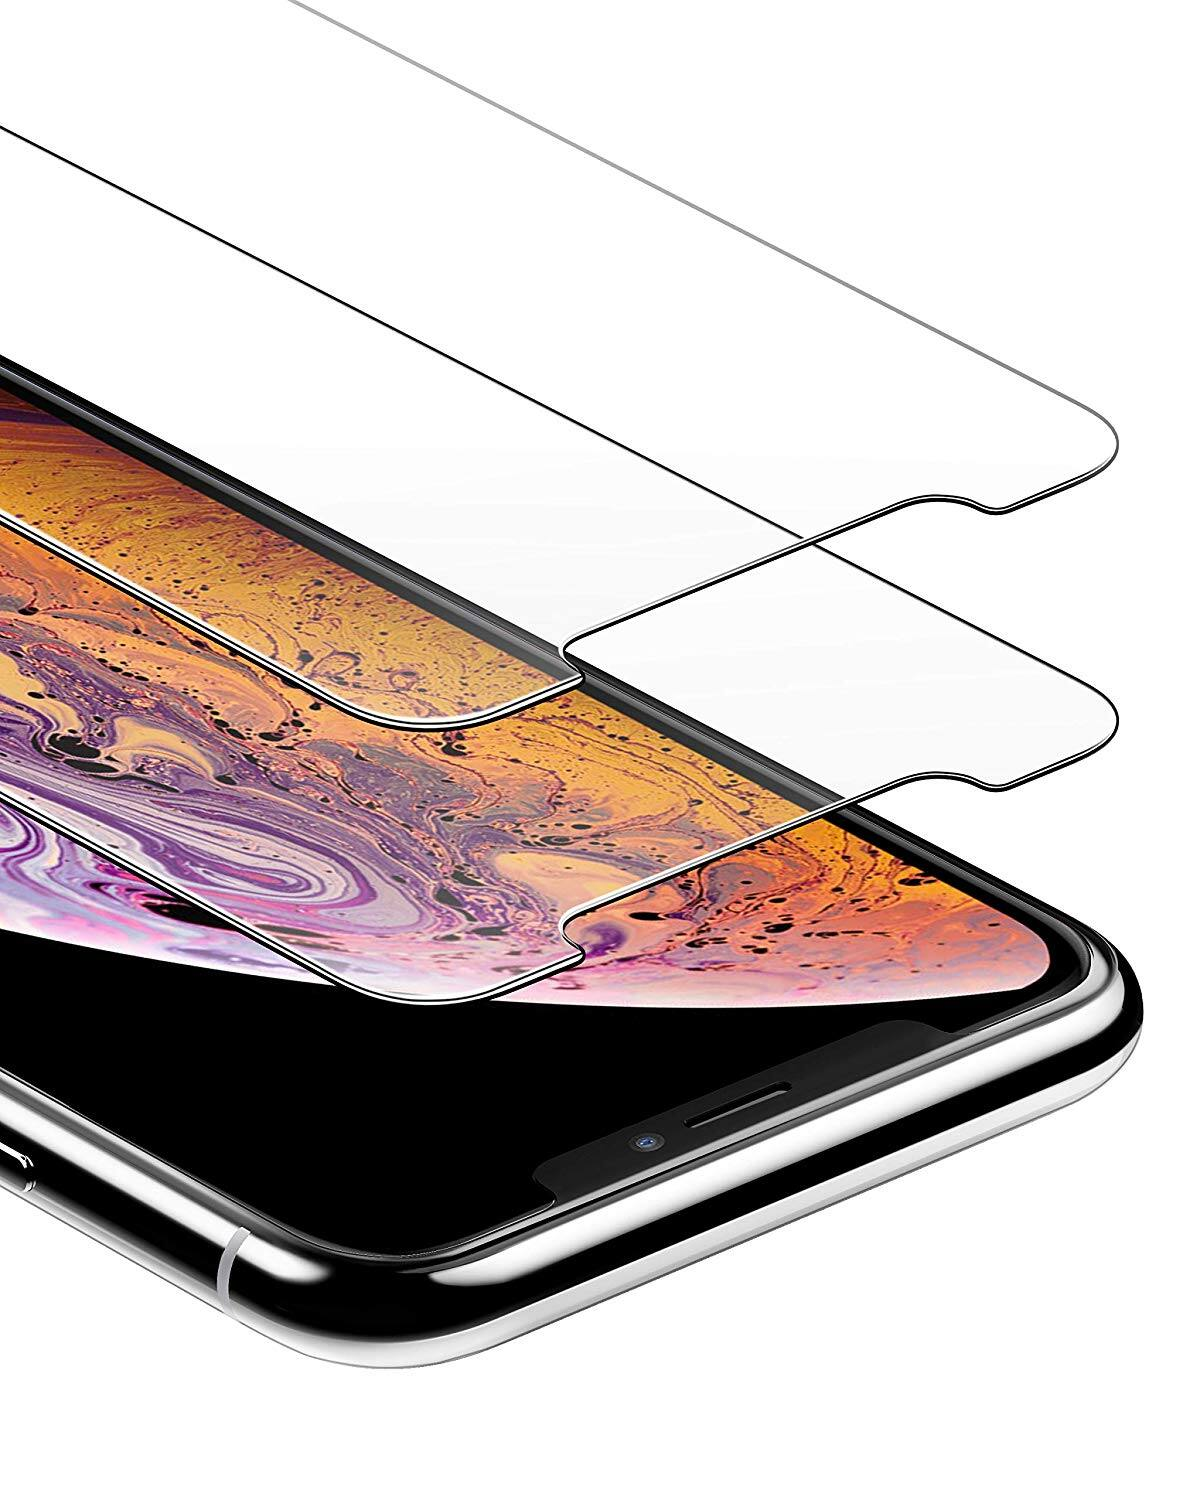 Anker Tempered Glass Screen Protector for iPhone X / Xs / Xs Max / XR: Starting From $5.99 + FSSS